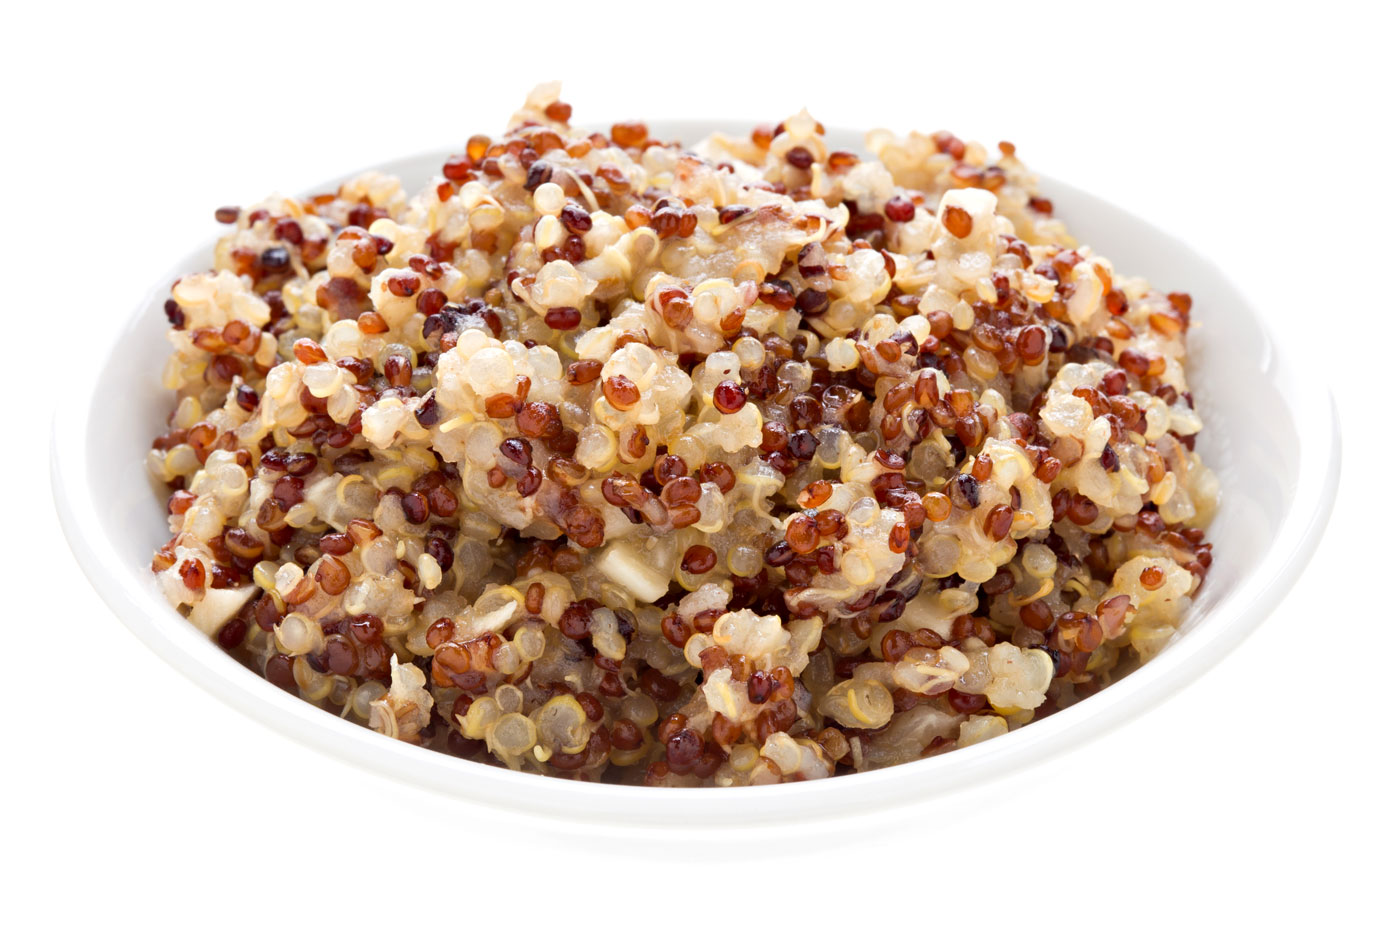 Quinoa: 1/2 cup has 20g carbs, 3g fibre, 111 calories